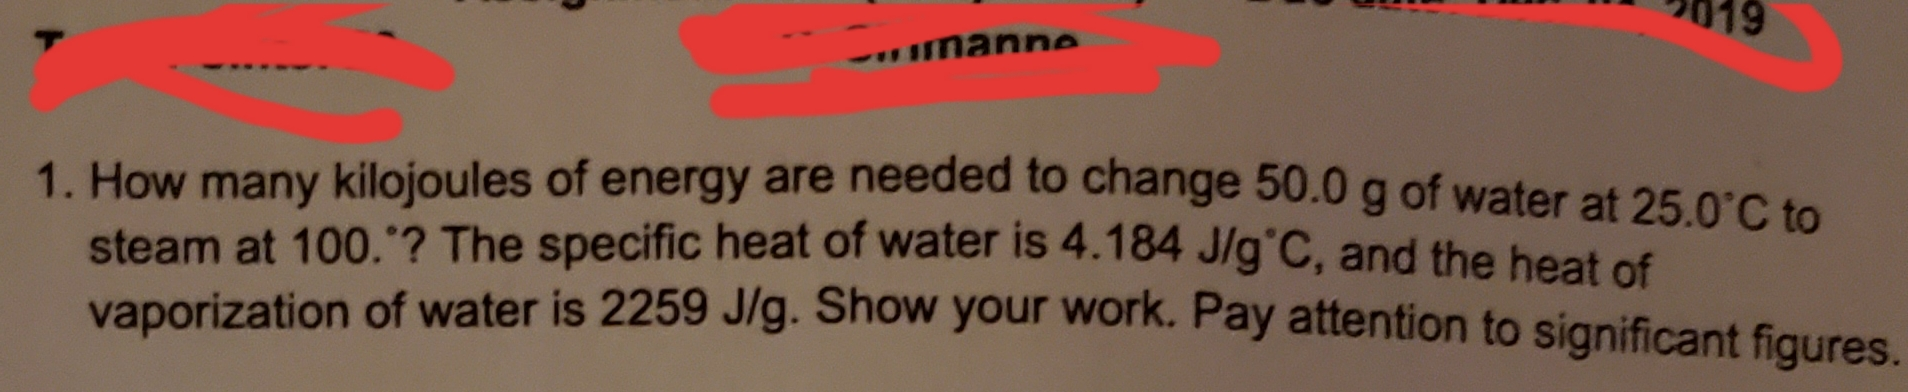 """19 rus Imanne 1. How many kilojoules of energy are needed to change 50.0 g of water at 25.0 C to steam at 100.""""? The specific heat of water is 4.184 J/g'C, and the heat of vaporization of water is 2259 J/g. Show your Work. Pay attention to significant fiqures."""